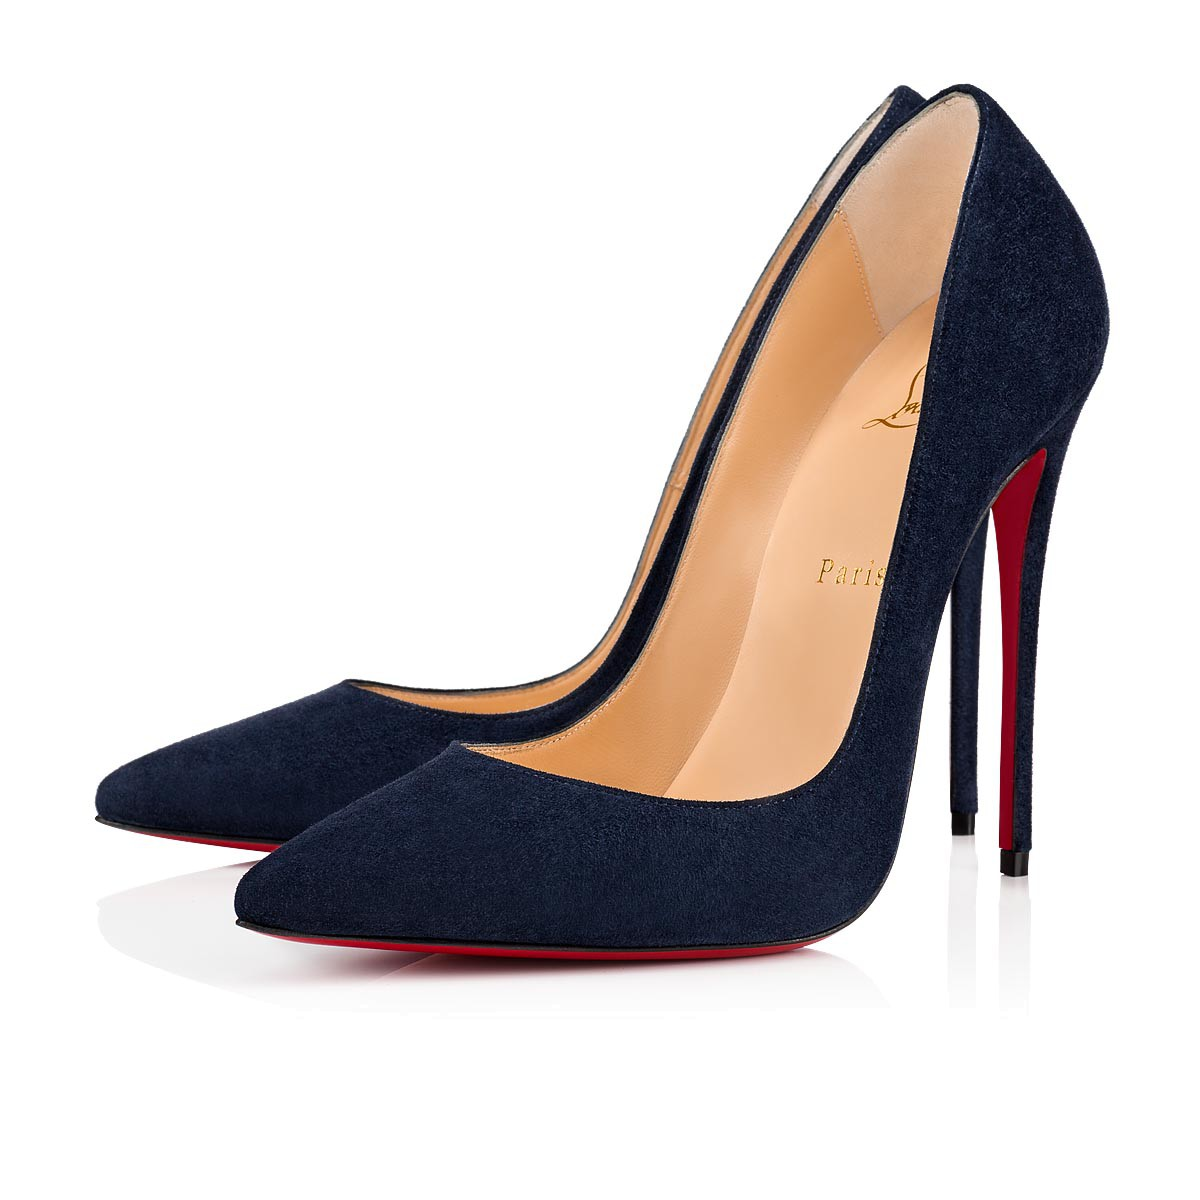 a9f787a1dd12 So Kate 120 Marine Suede - Women Shoes - Christian Louboutin